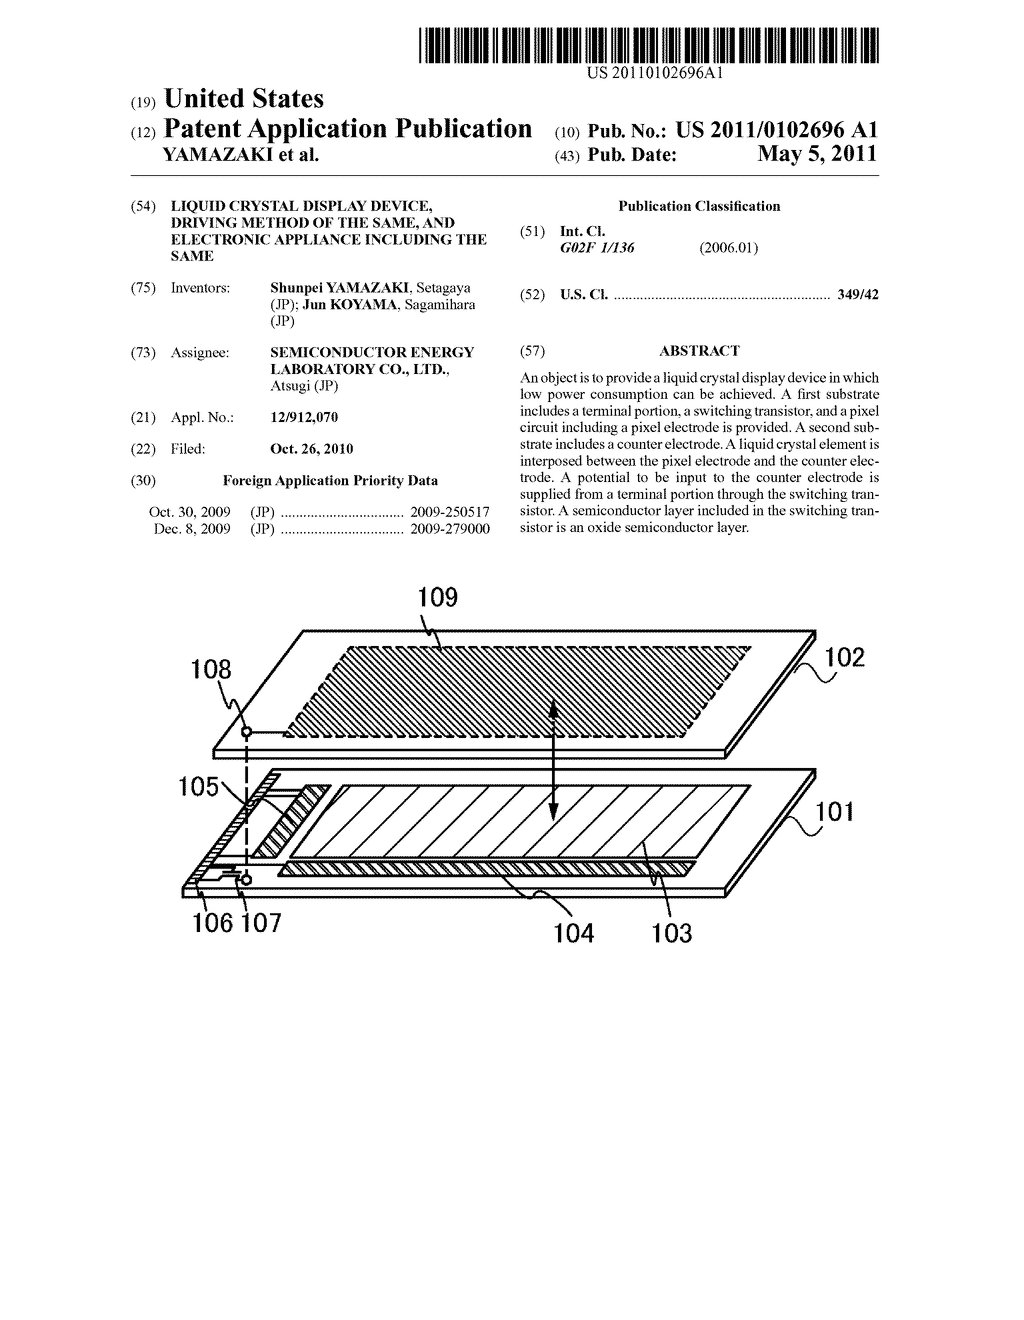 LIQUID CRYSTAL DISPLAY DEVICE, DRIVING METHOD OF THE SAME, AND ELECTRONIC APPLIANCE INCLUDING THE SAME - diagram, schematic, and image 01